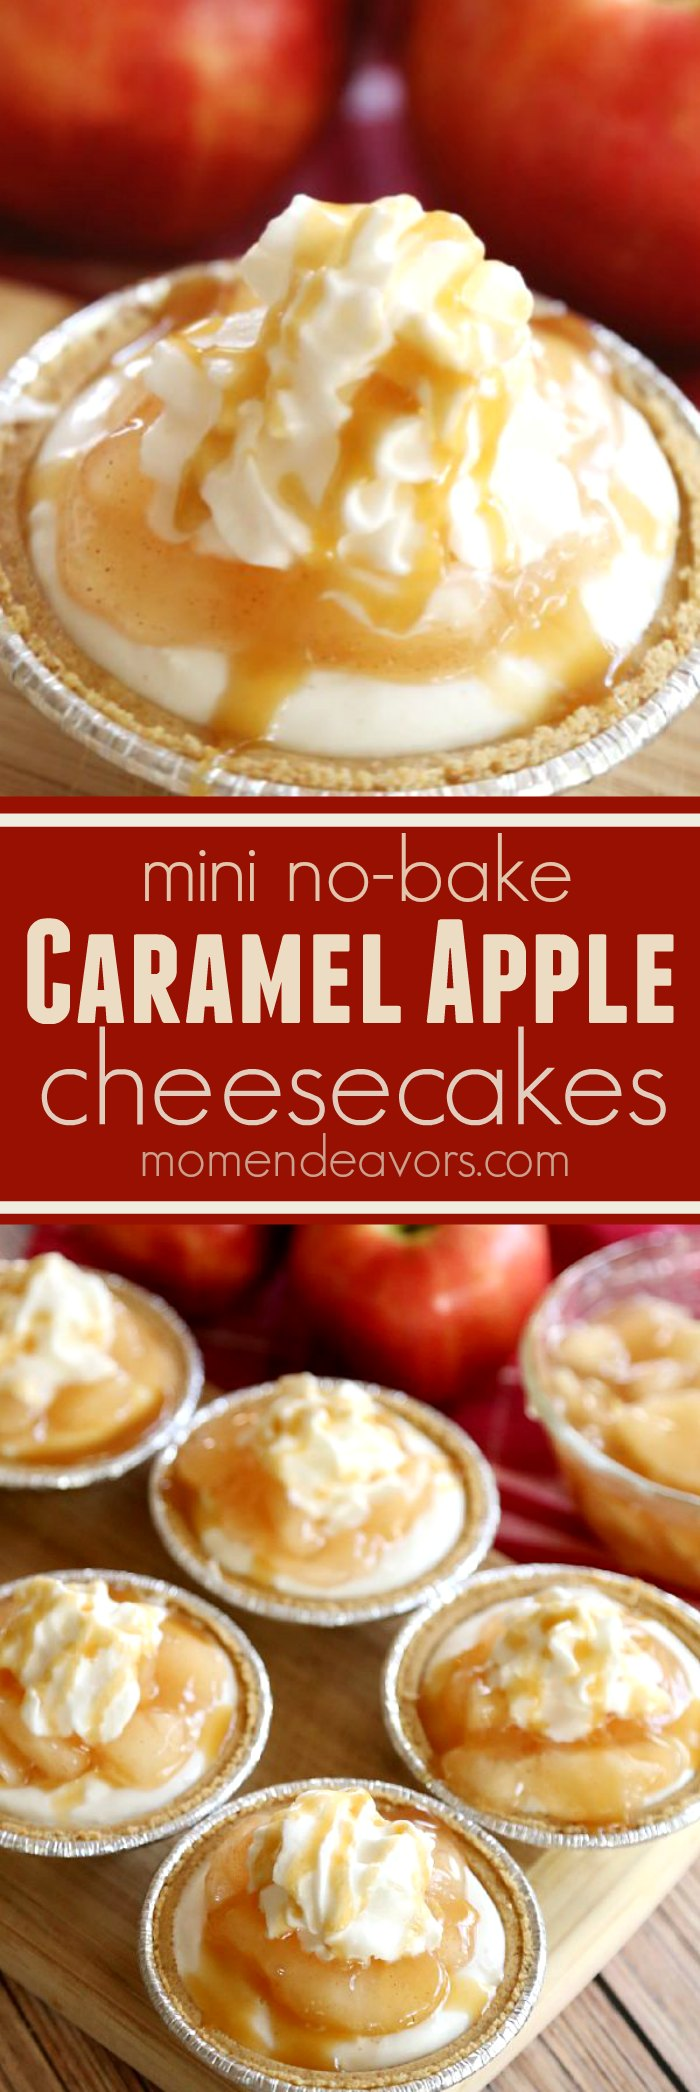 Mini Caramel Apple No-Bake Cheesecakes